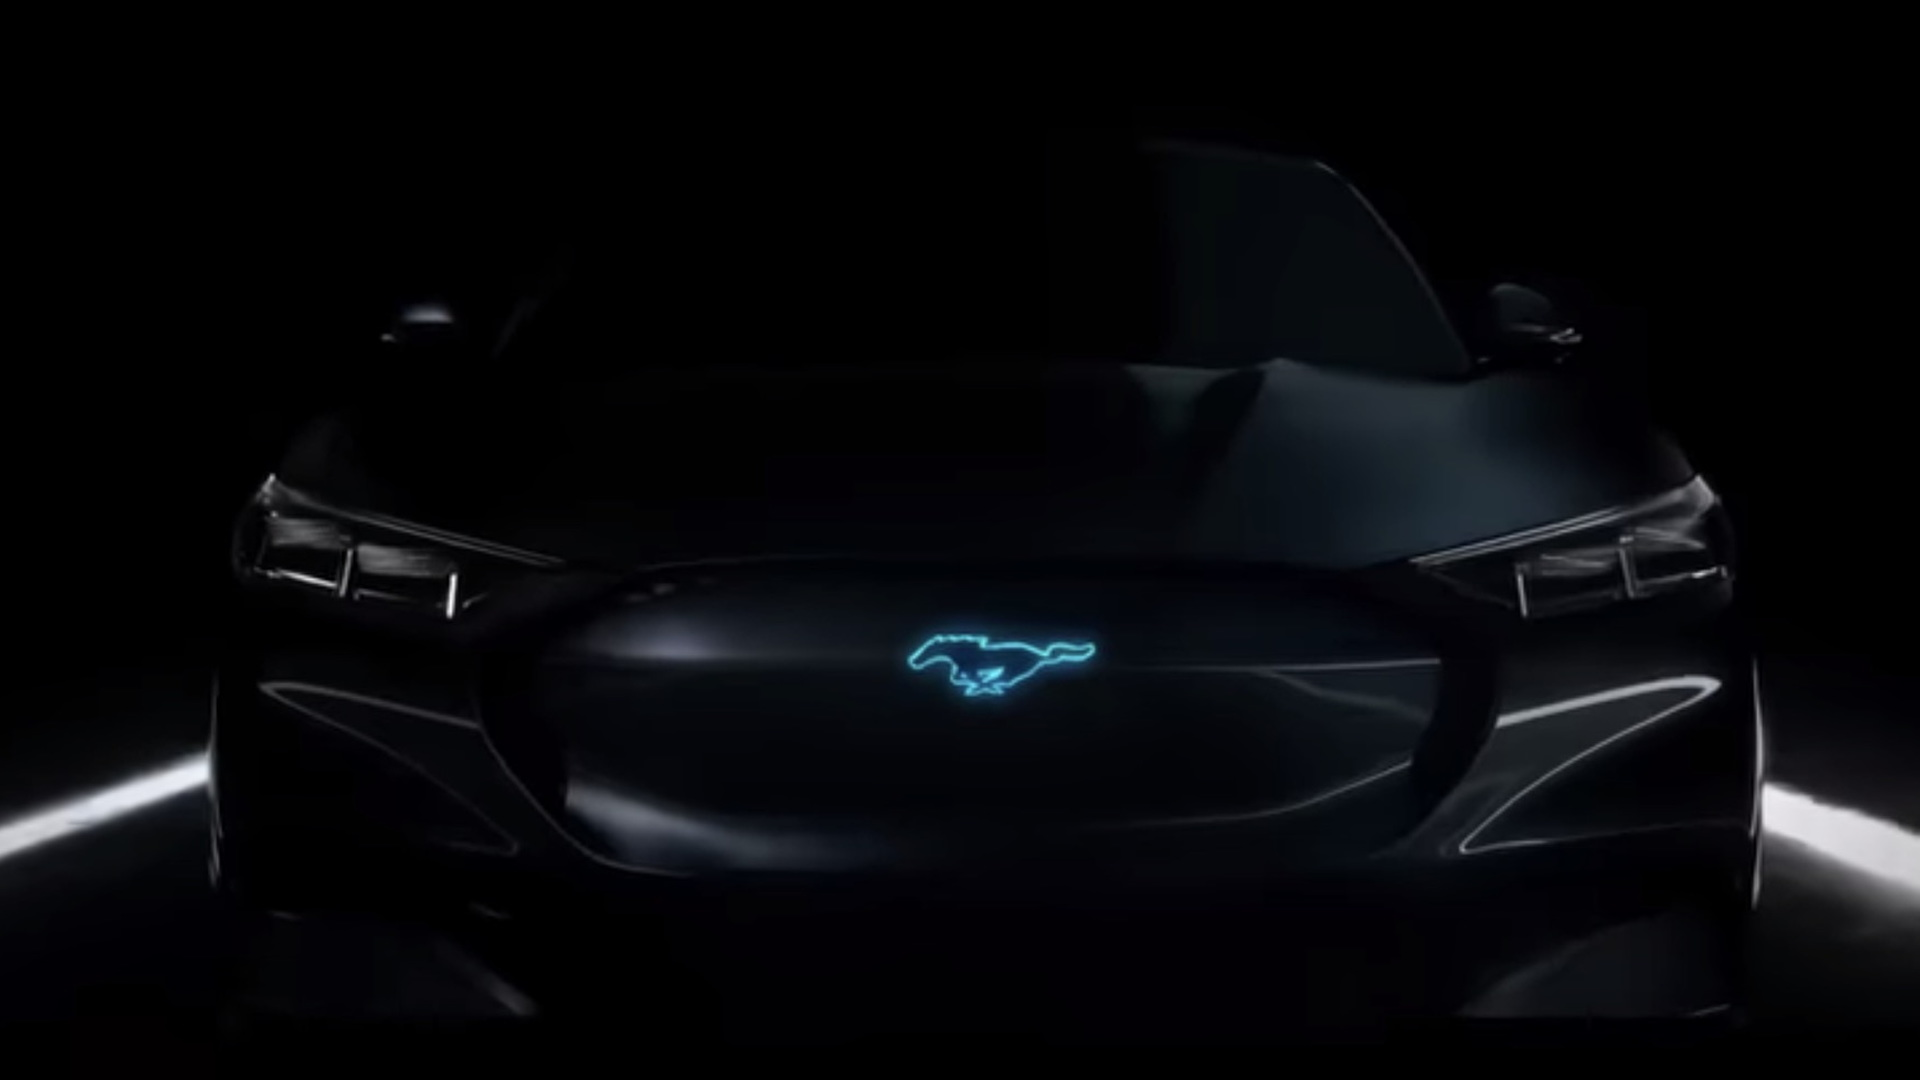 Mystery Ford Mustang teaser